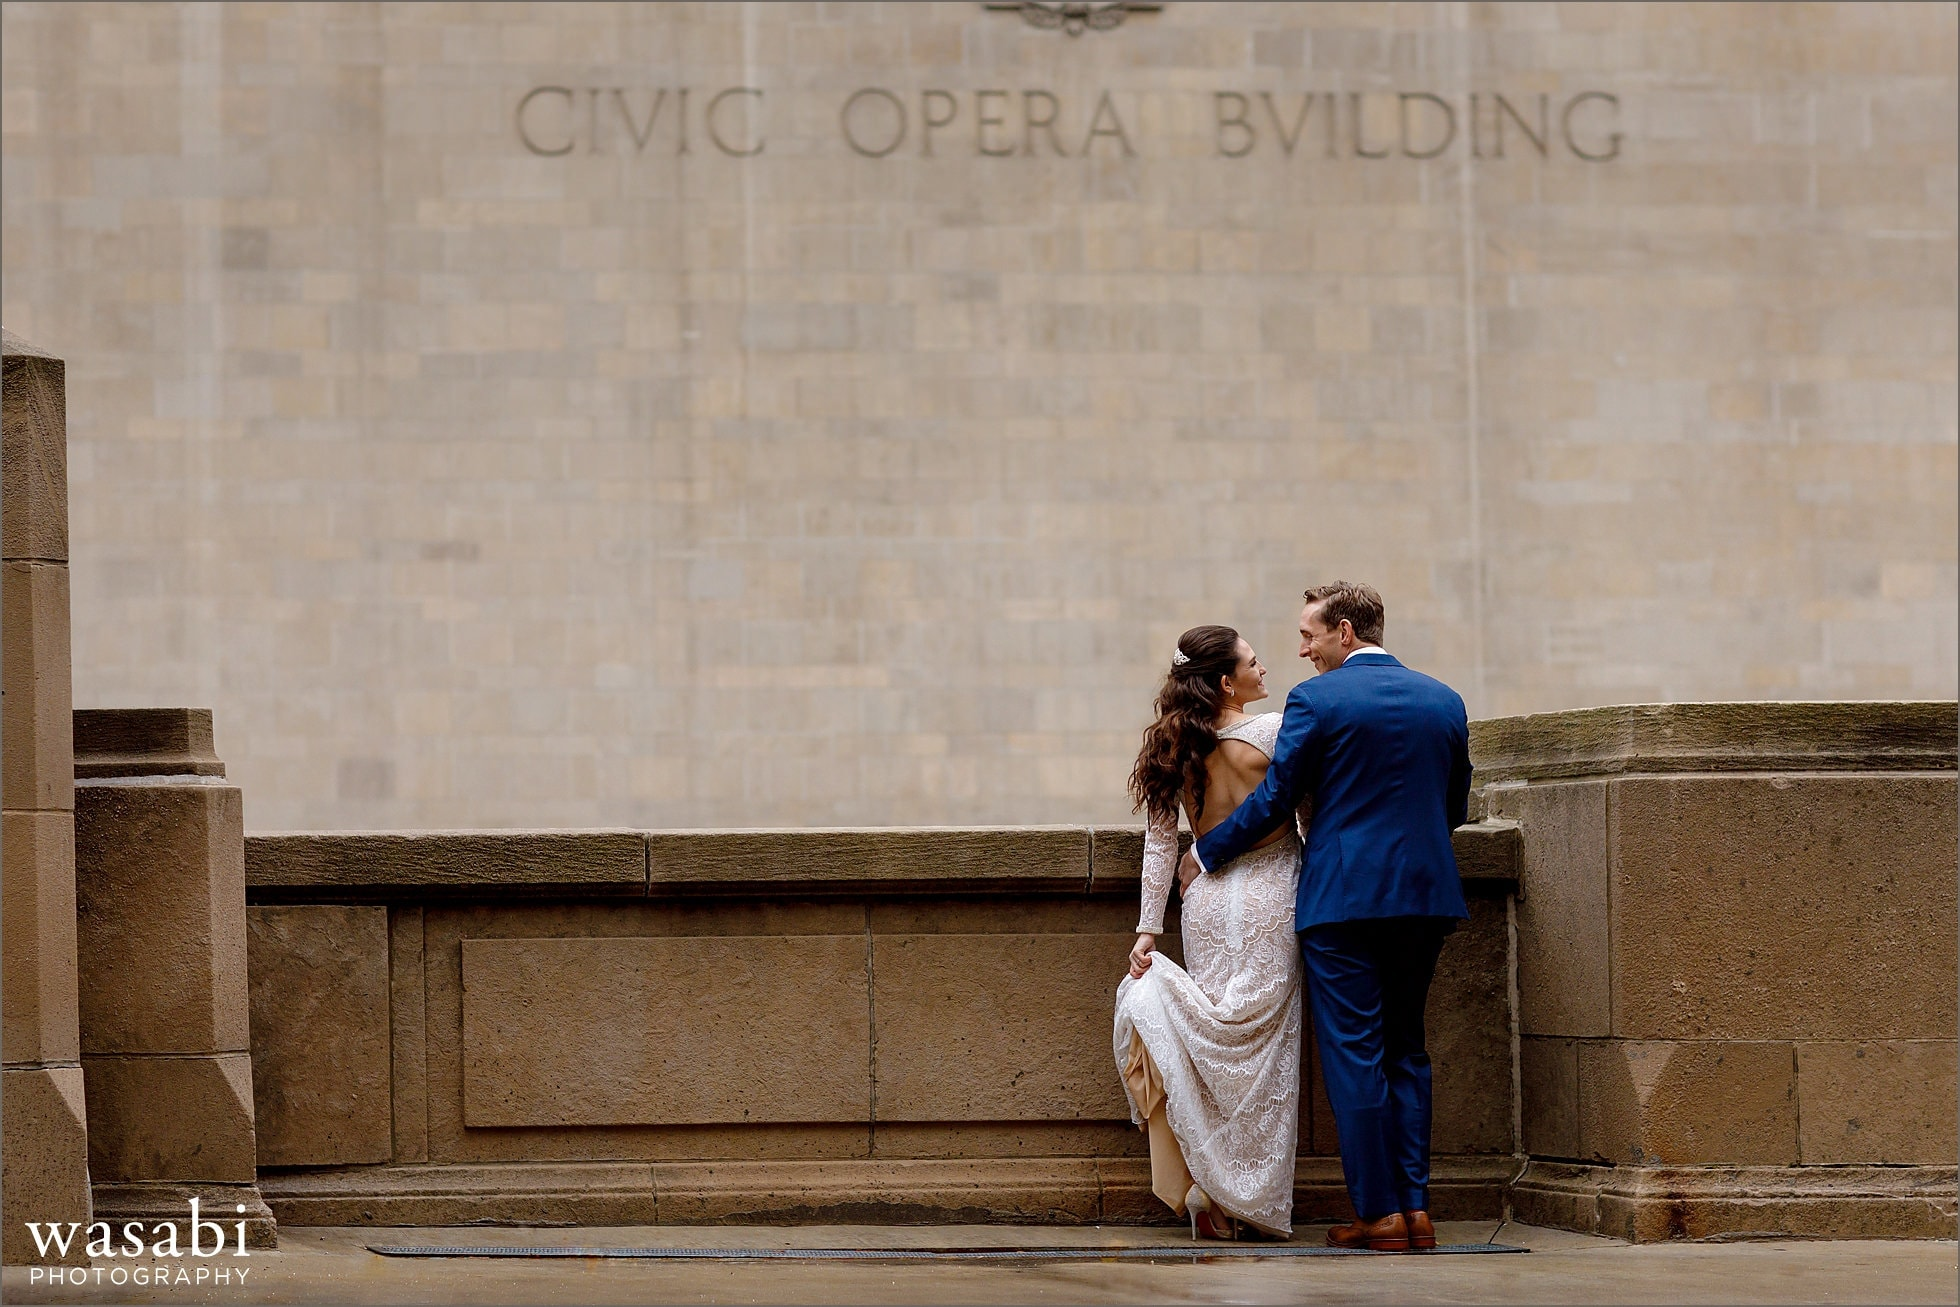 bride and groom pose for portrait with Civic Opera Building in the background in downtown Chicago